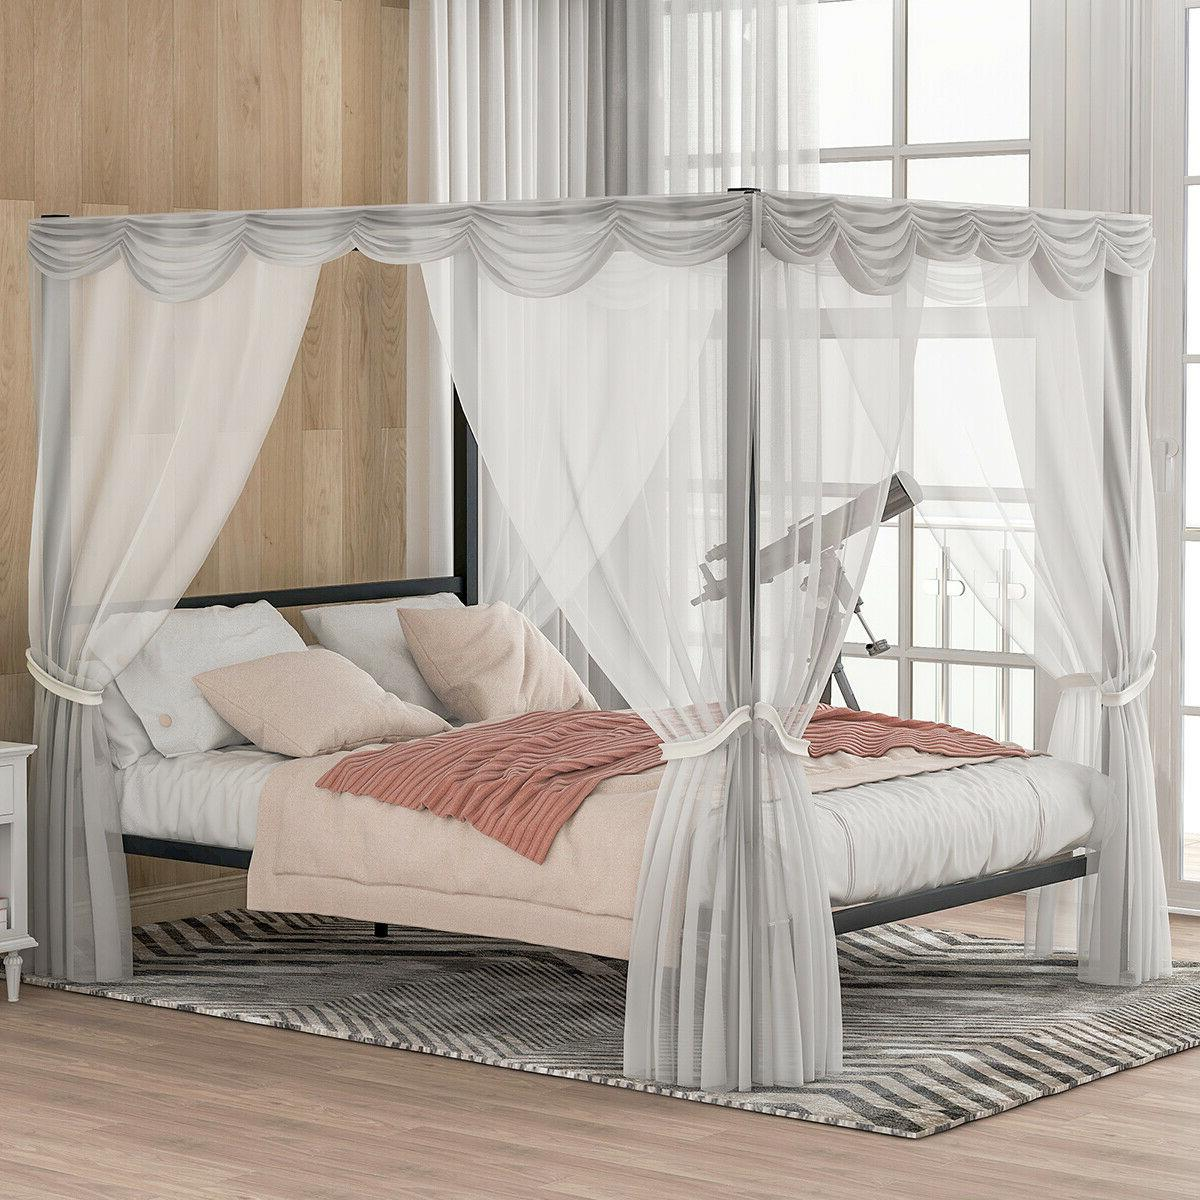 queen size metal bed frame canopy bed